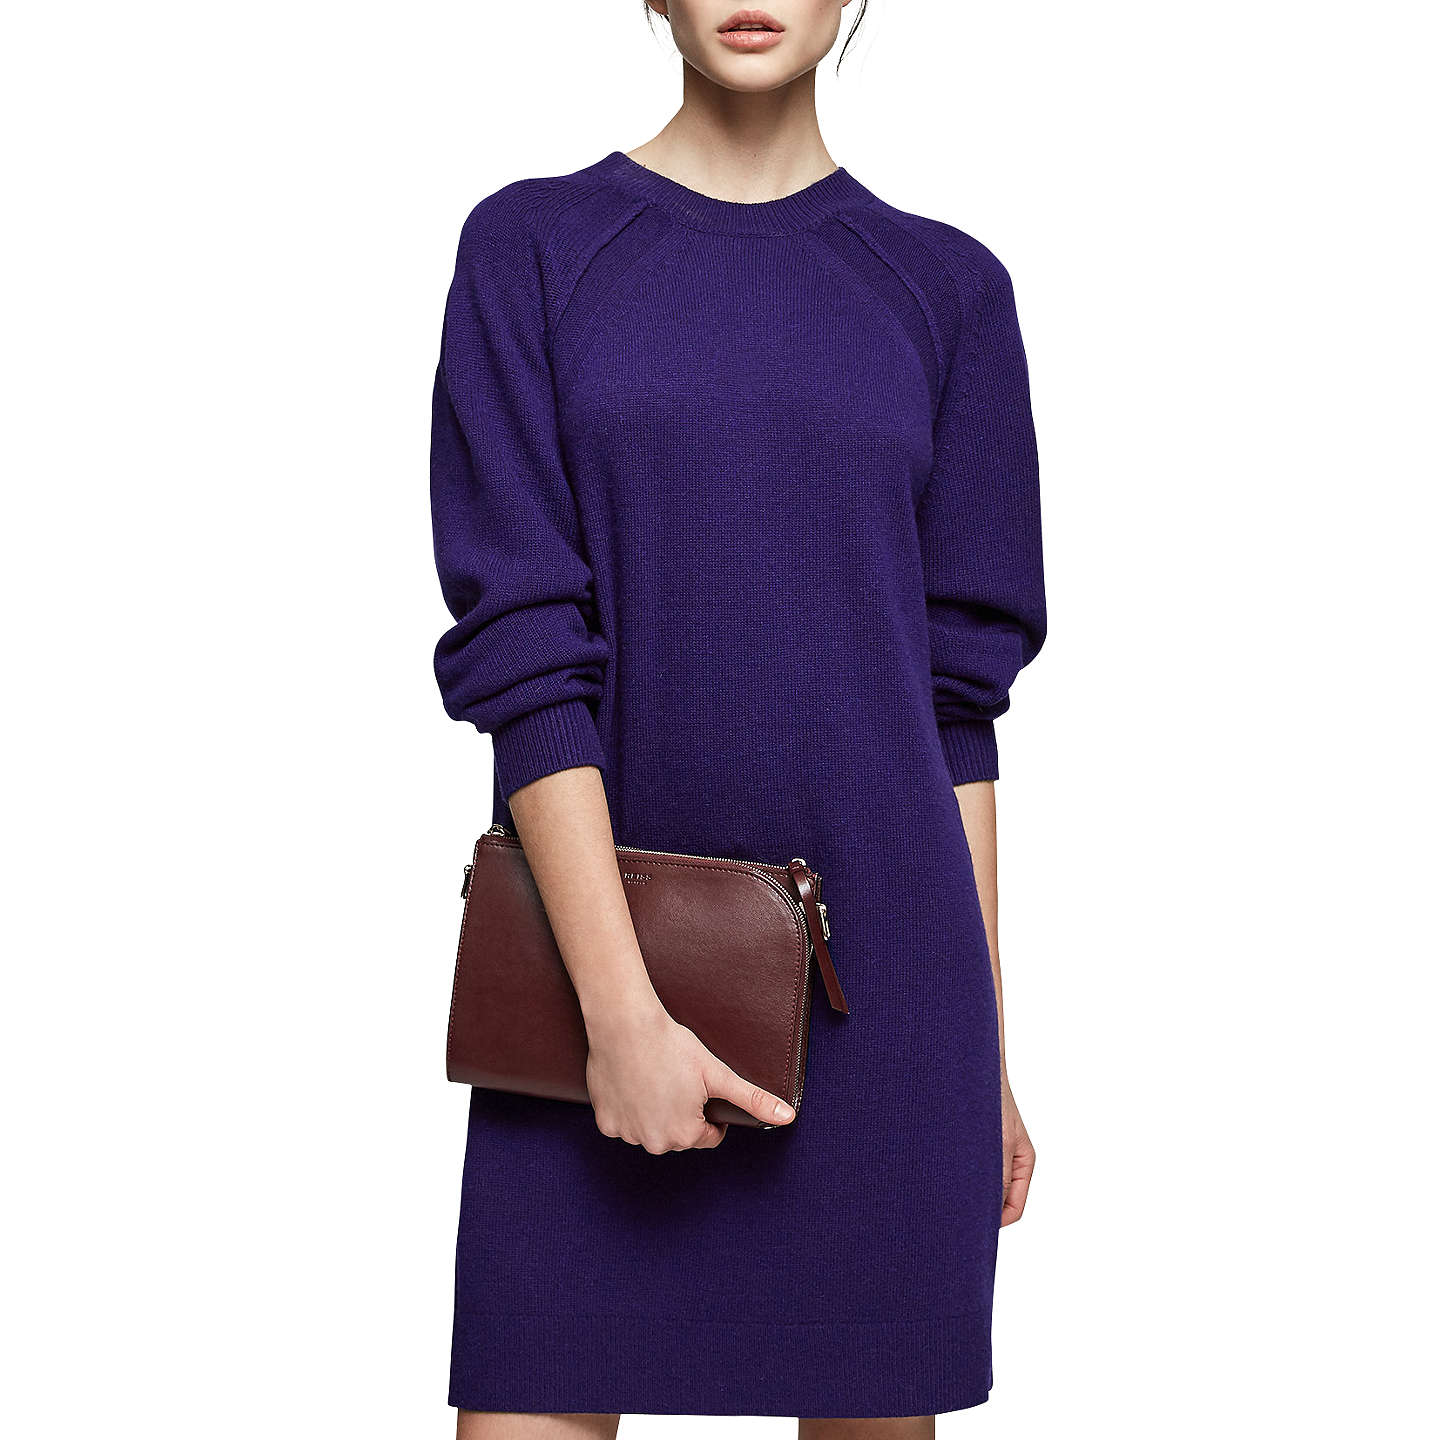 Reiss Blanca Crew Neck Knitted Dress, Cobalt by Reiss